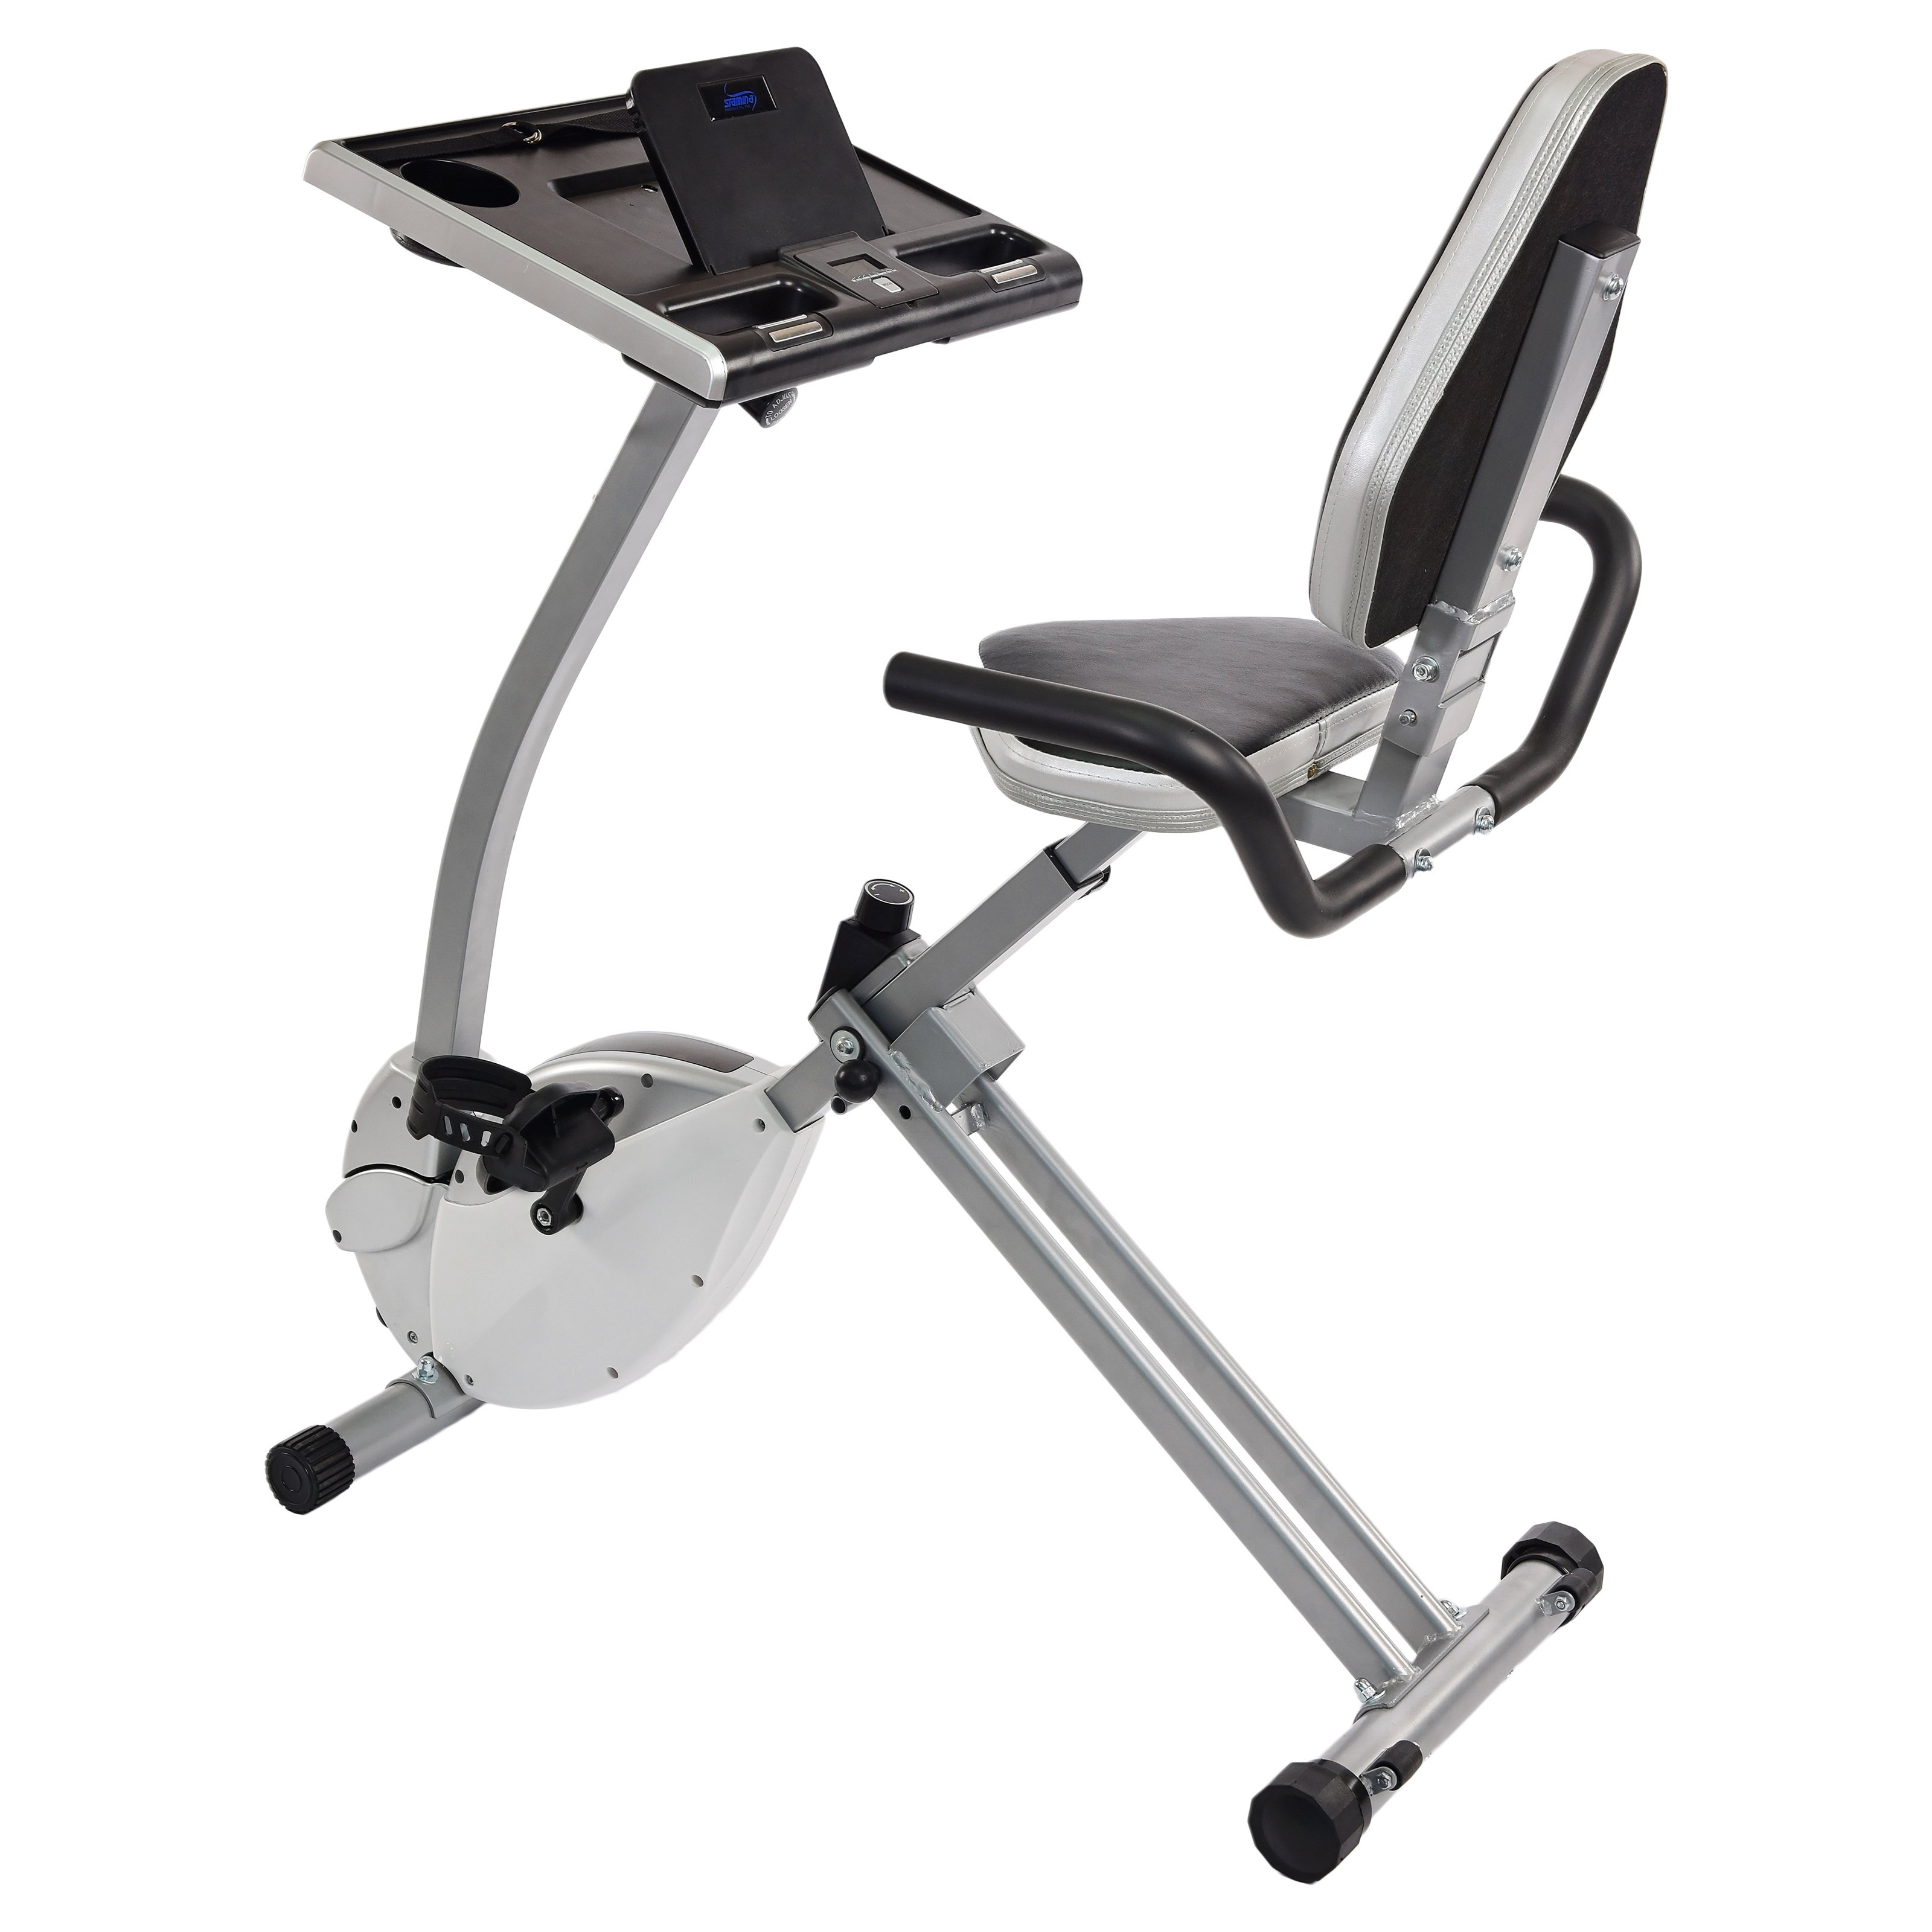 Stamina 2in1 Recumbent Exercise Bike Workstation and Standing